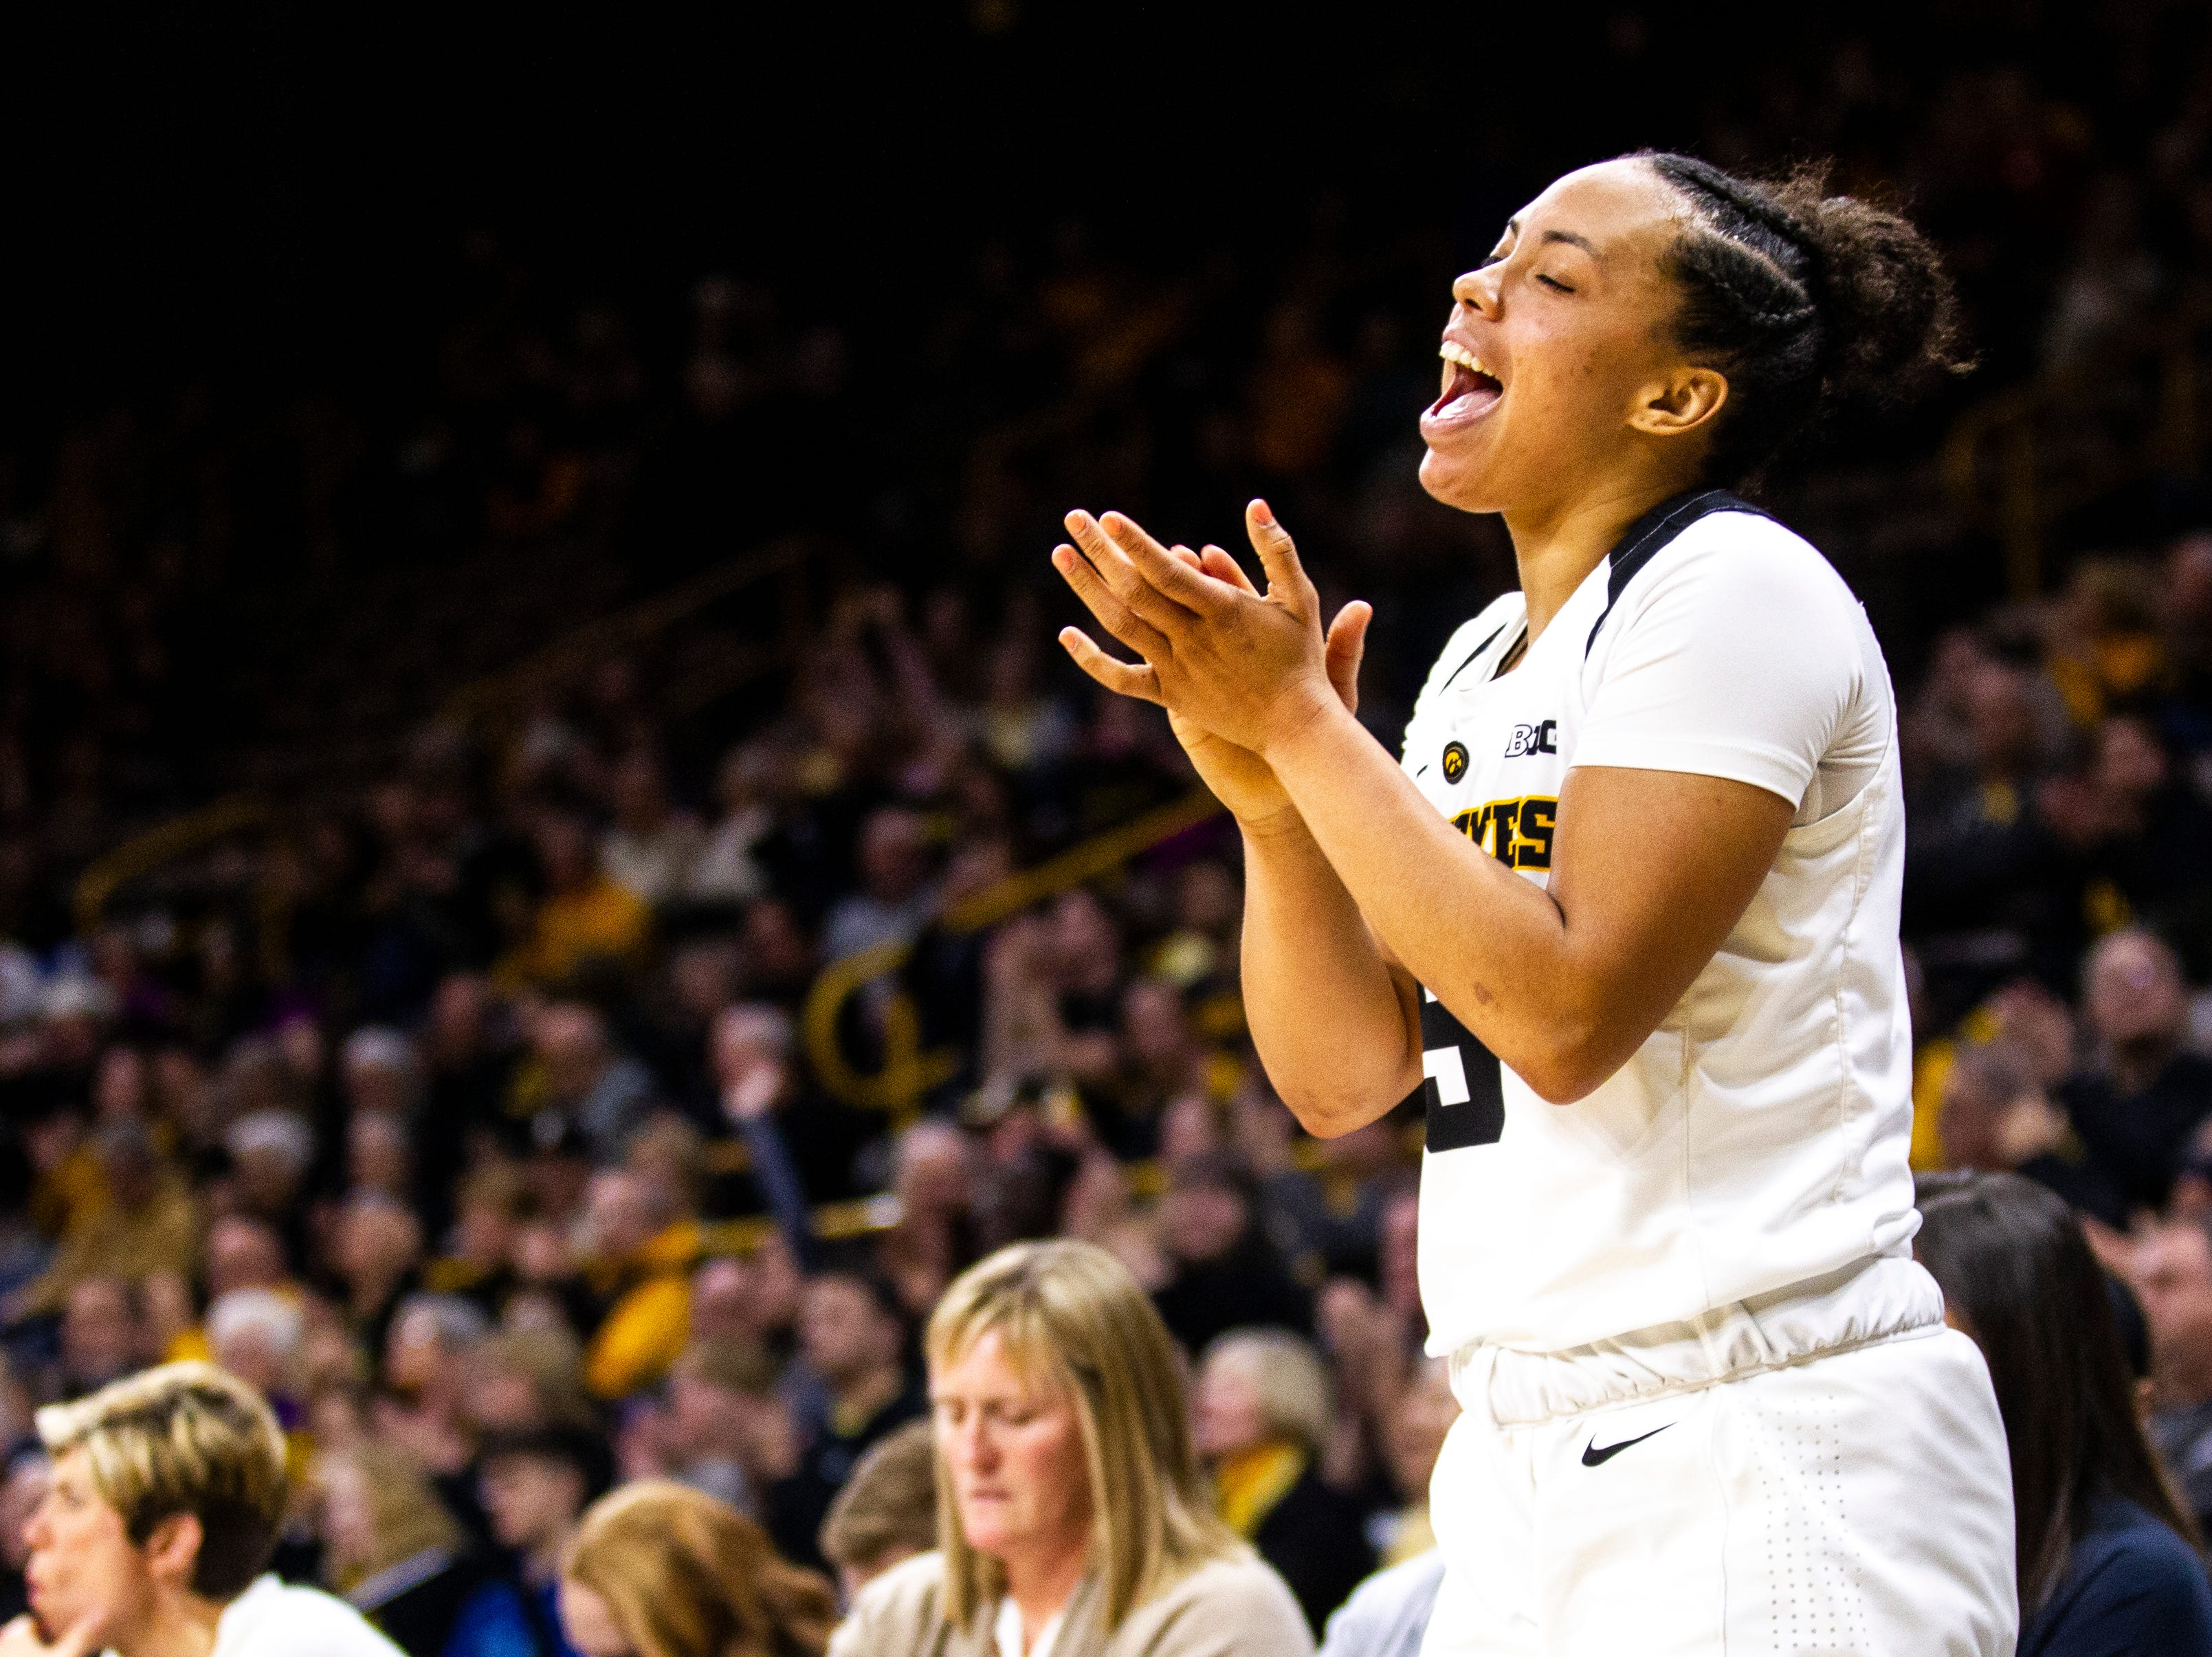 Iowa guard Alexis Sevillian (5) celebrates from the bench during a NCAA Big Ten Conference women's basketball game on Thursday, Jan. 17, 2019, at Carver-Hawkeye Arena in Iowa City, Iowa.